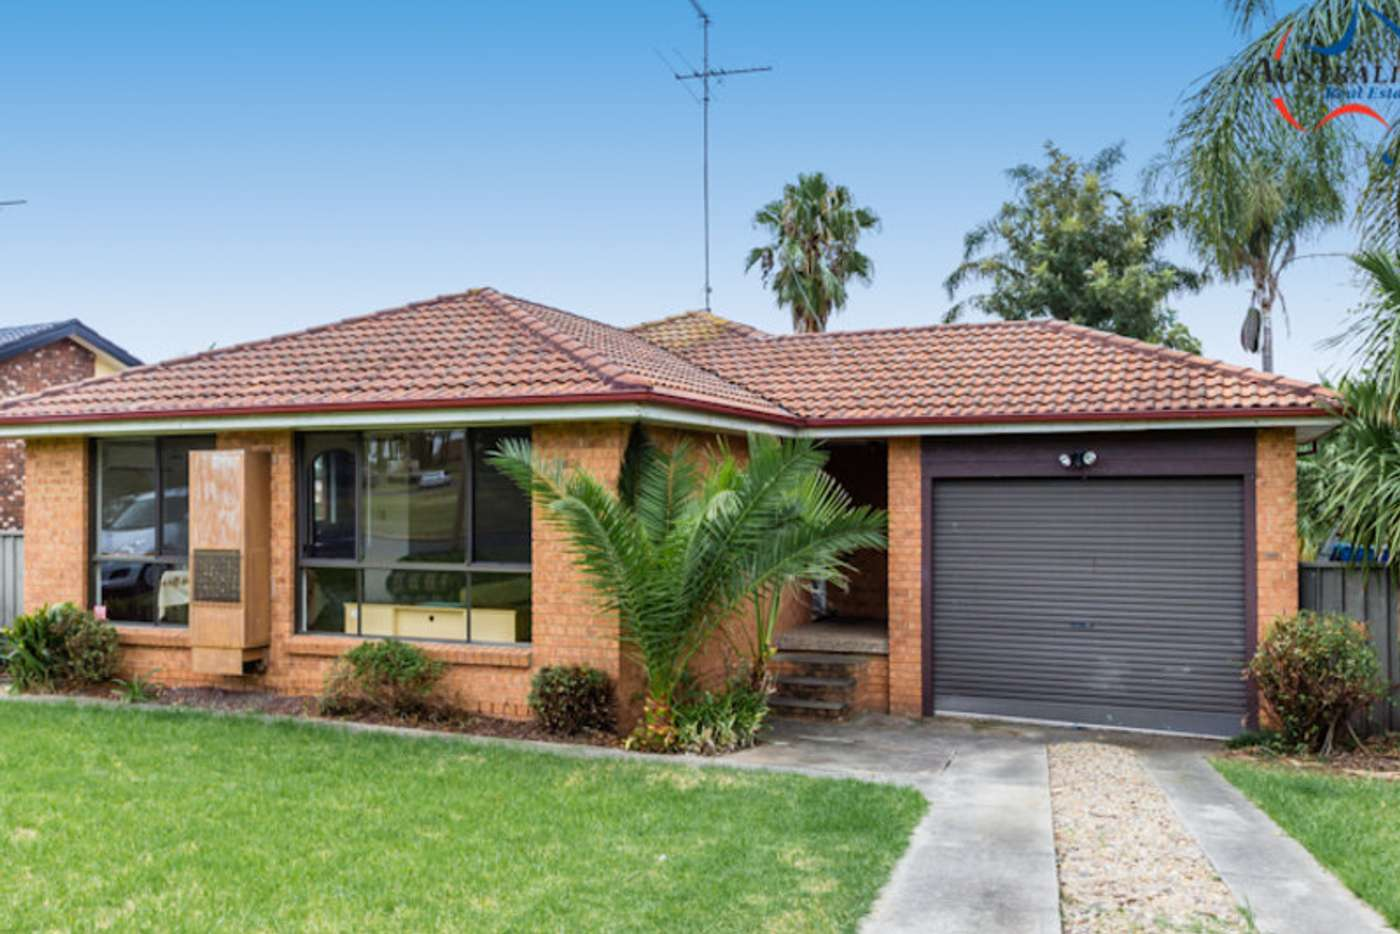 Main view of Homely house listing, 19 Hunter Street, St Clair NSW 2759